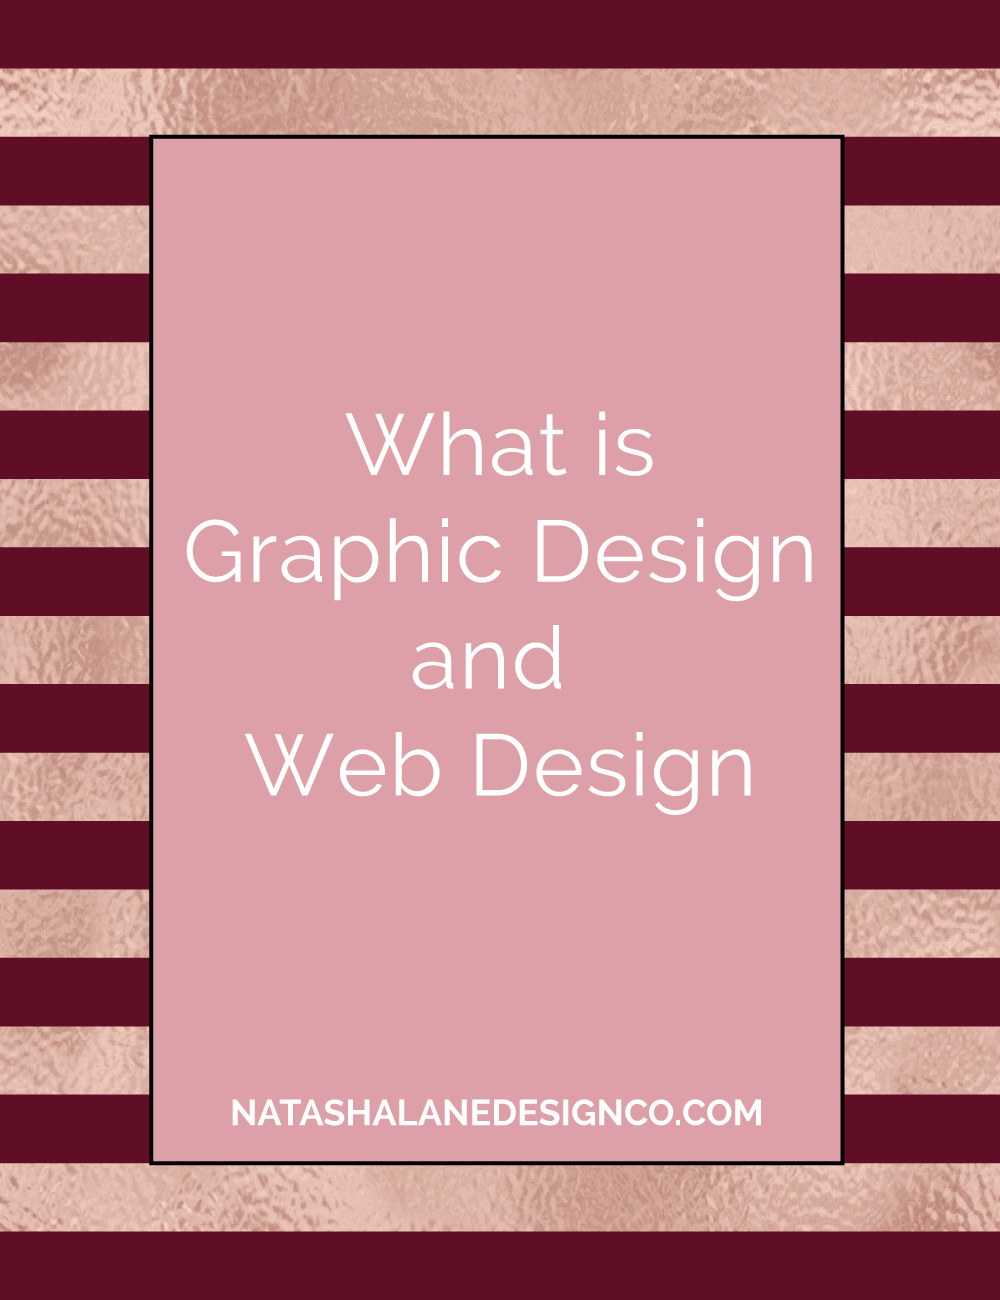 blog title- what is graphic design and web design